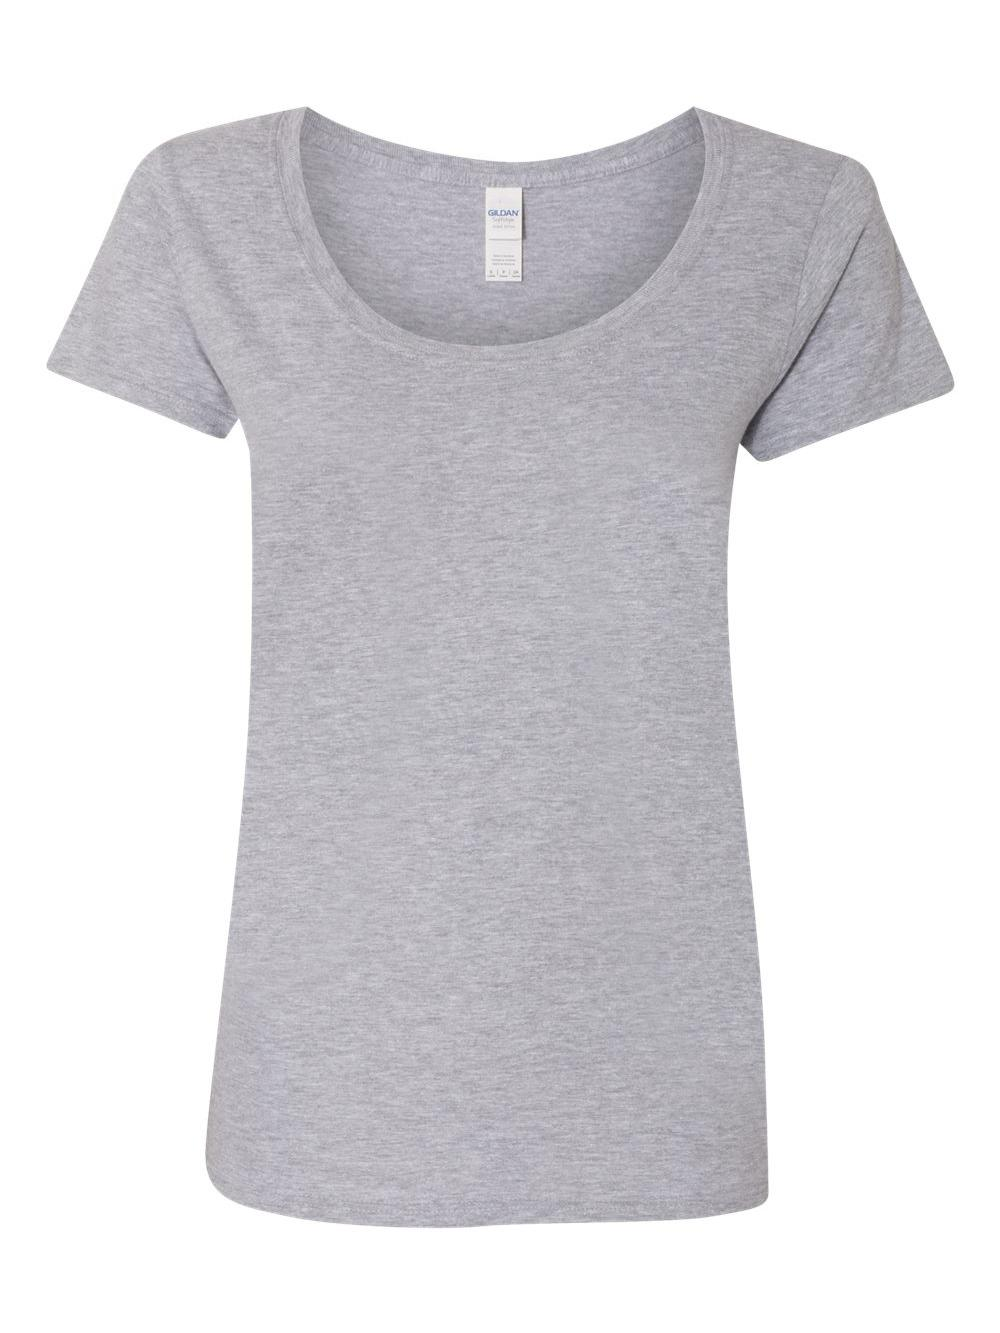 Gildan-Softstyle-Women-039-s-Deep-Scoopneck-T-Shirt-64550L thumbnail 45